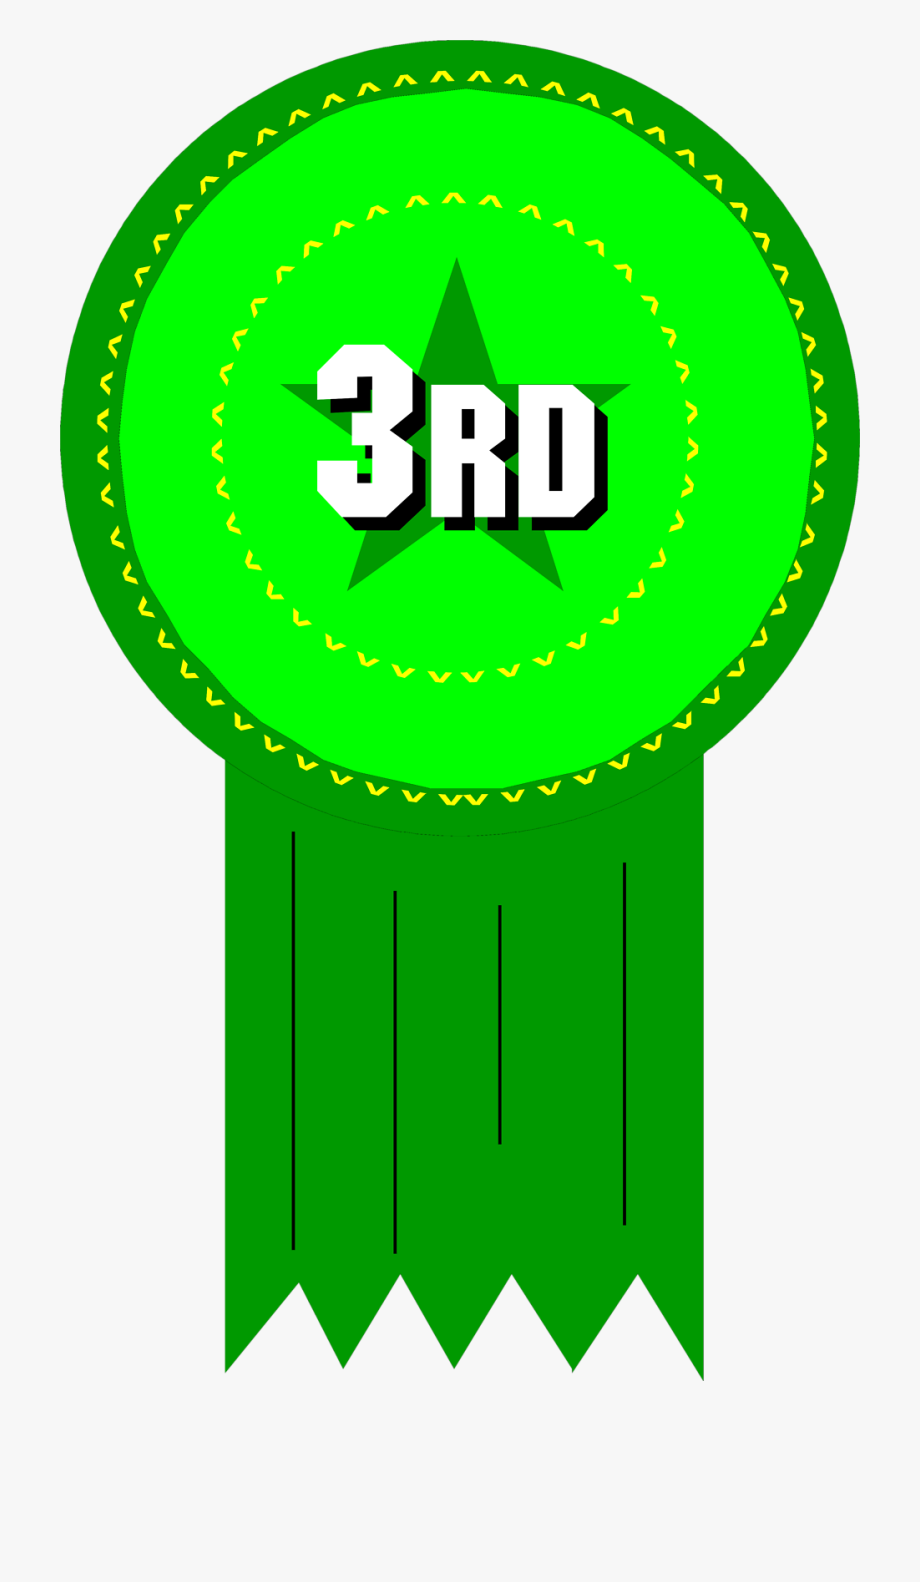 Free Stock Photo - 3rd Place Ribbon Clipart #466571 - Free Cliparts ... png library